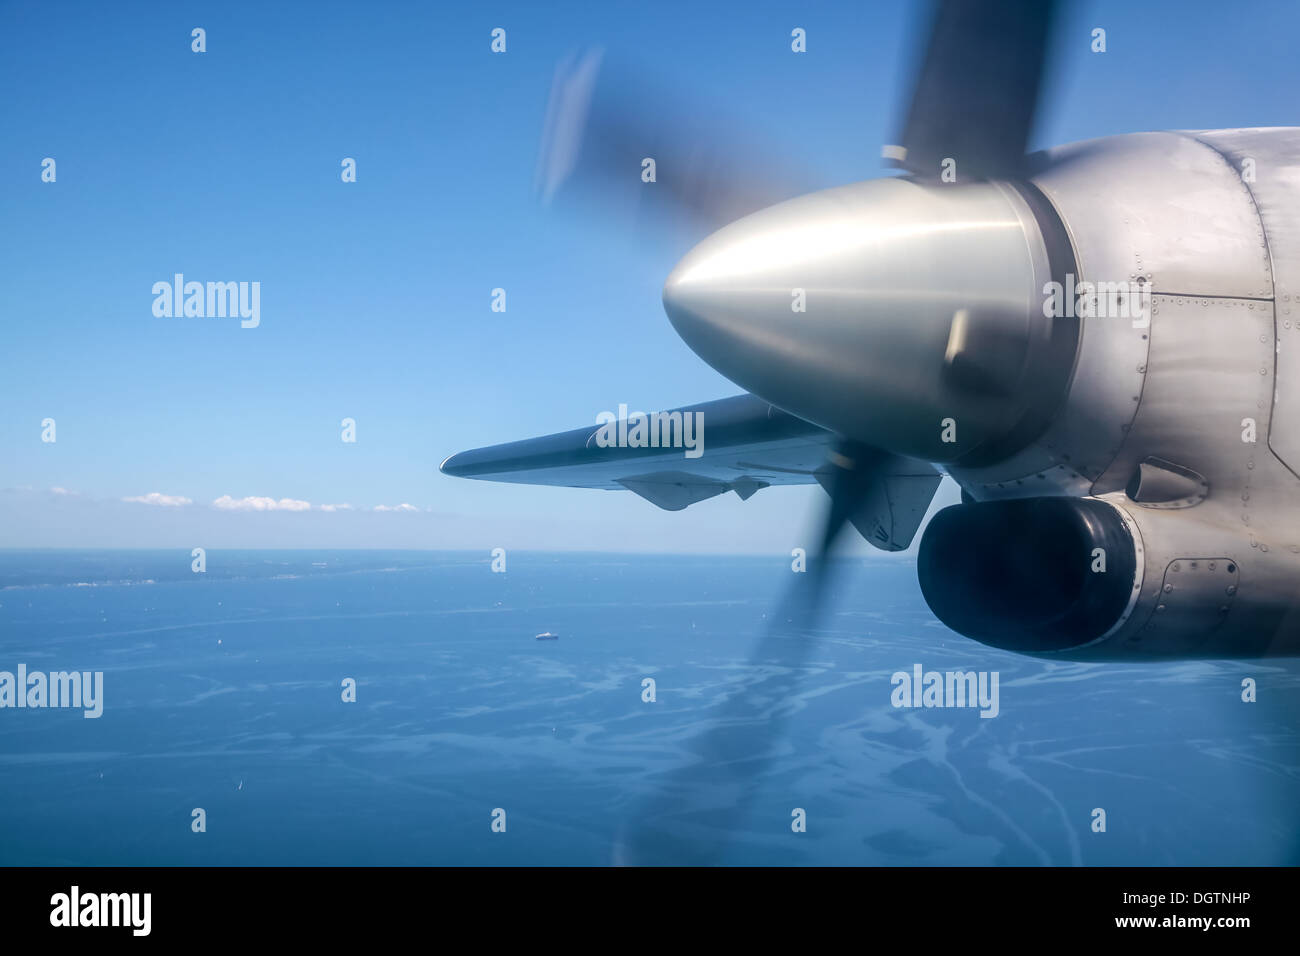 Running propeller and aerial view of the Baltic Sea near Bornholm, Denmark - Stock Image